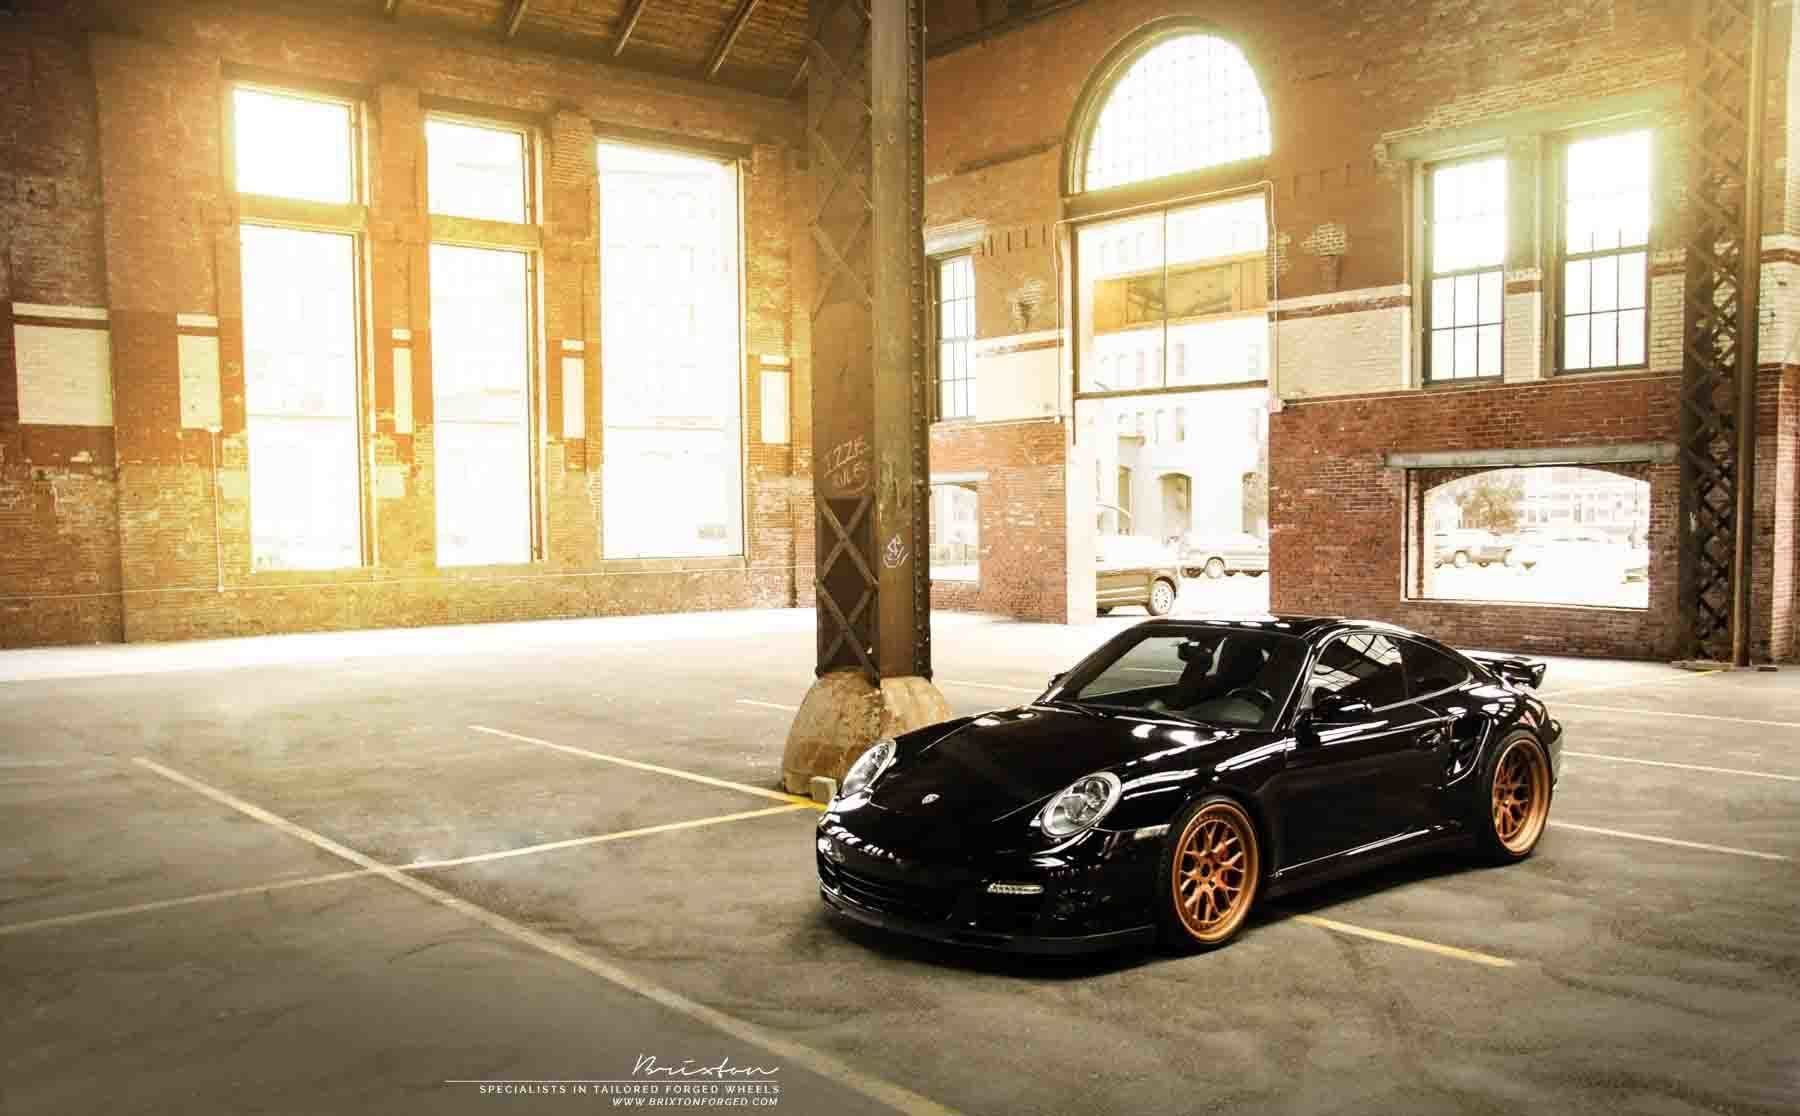 images-products-1-2703-232974991-black-porsche-997-turbo-brixton-forged-cm16-circuit-series-rose-gold-6-1800x1116.jpg